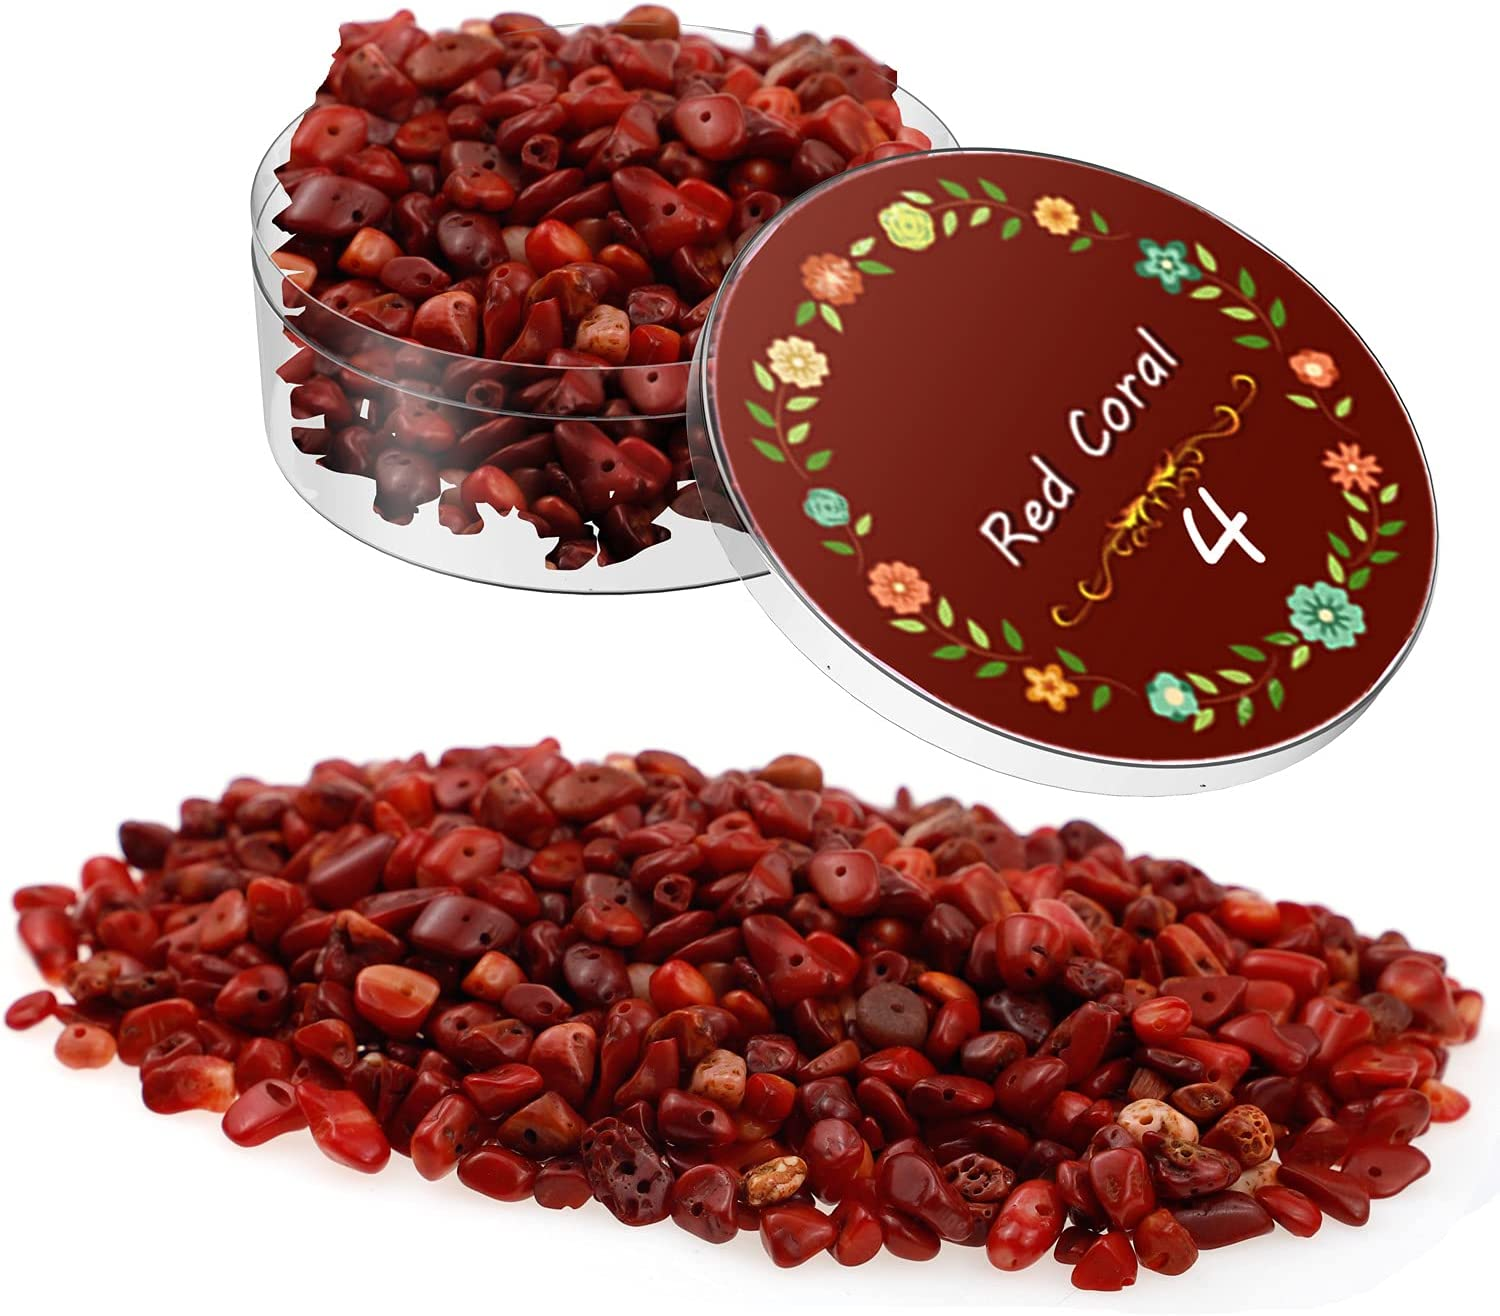 WIWISI 220Pcs Chip Stone Beads 5-8mm Crystal Beads for Jewelry Making, Natural Irregular Gemstones Crushed Bead DIY Tree of Life Pendant Bracelet Ring Earring(Red Coral)